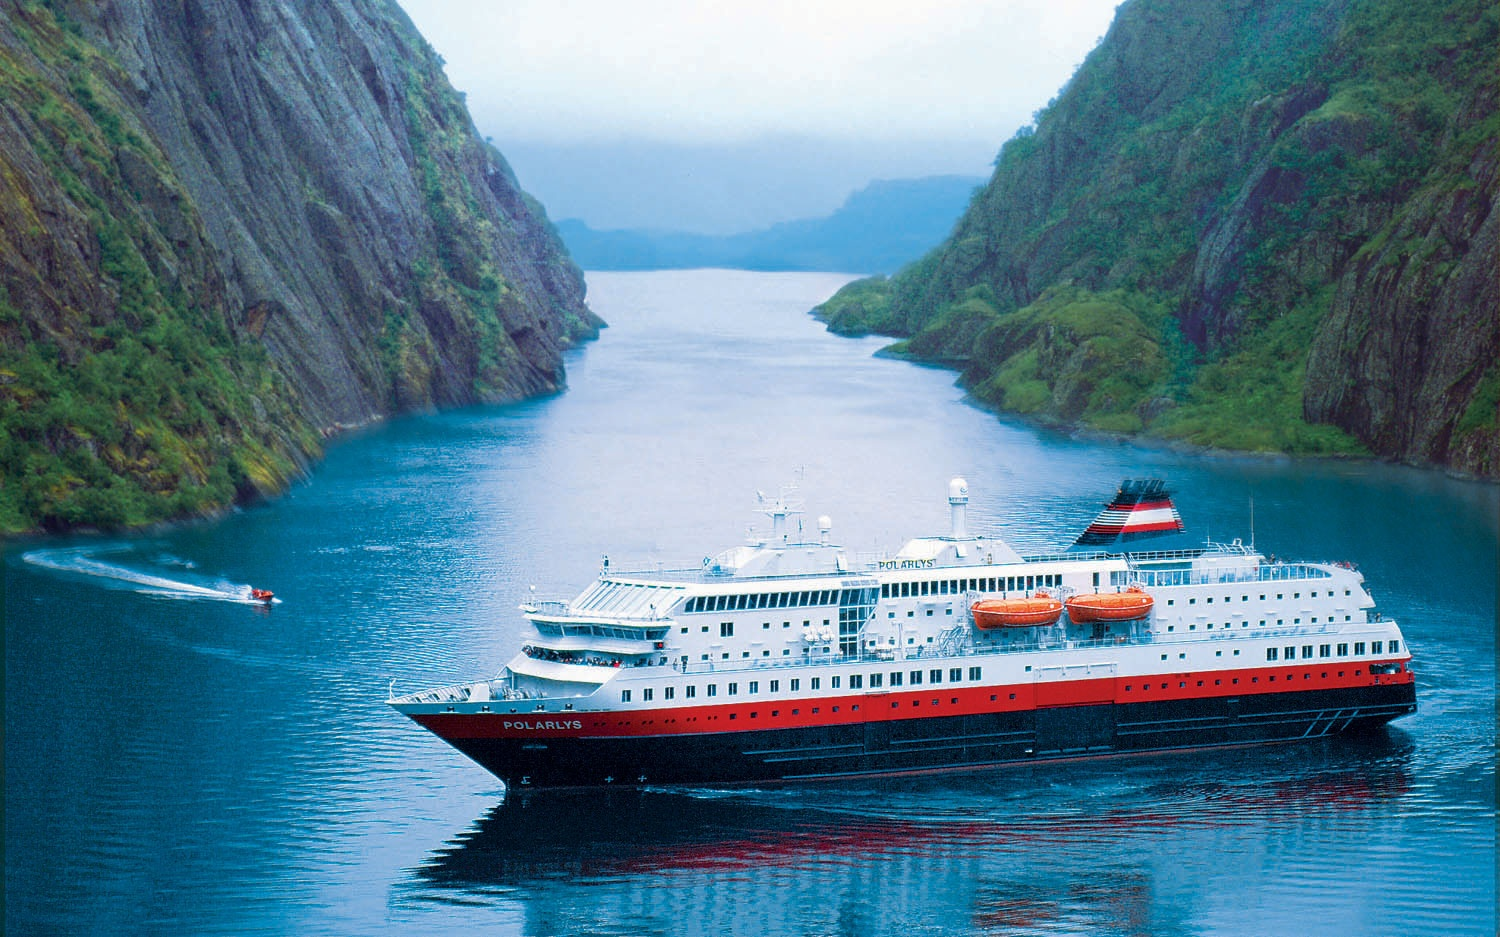 2,700-passenger Disney cruise ship in Norway